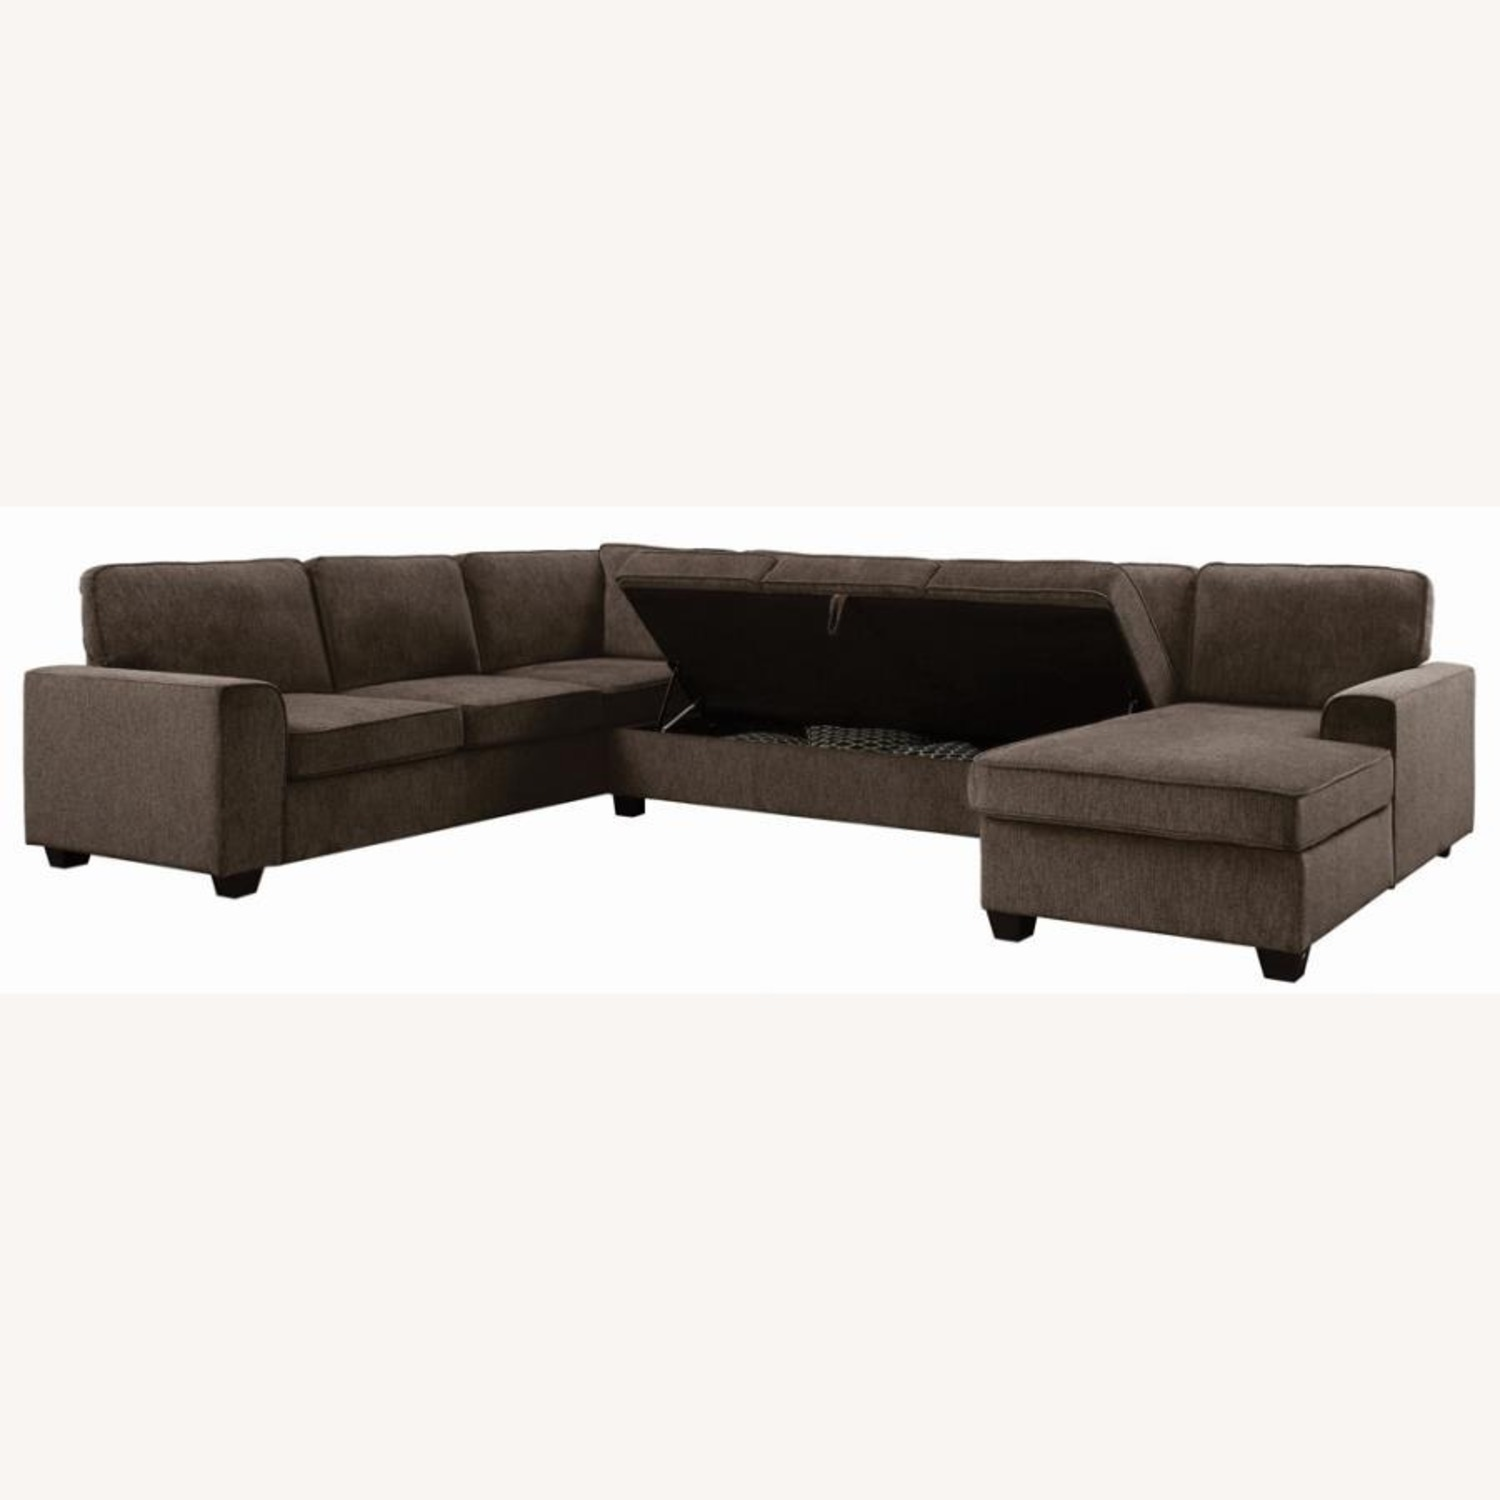 Sectional In Multi-Tonal Brown Chenille Upholstery - image-6